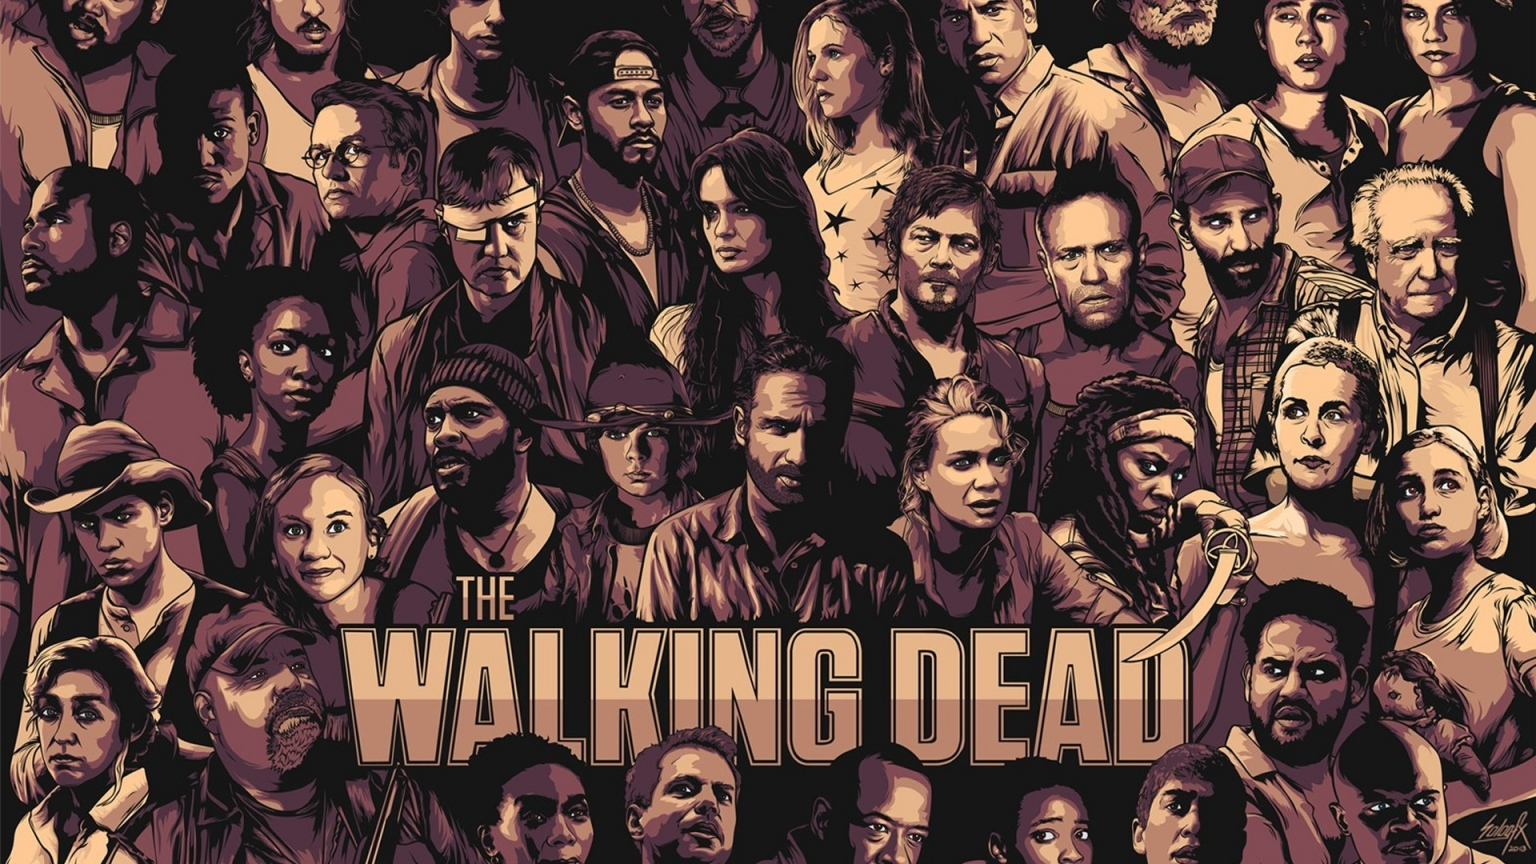 The Walking Dead Cool Poster for 1536 x 864 HDTV resolution